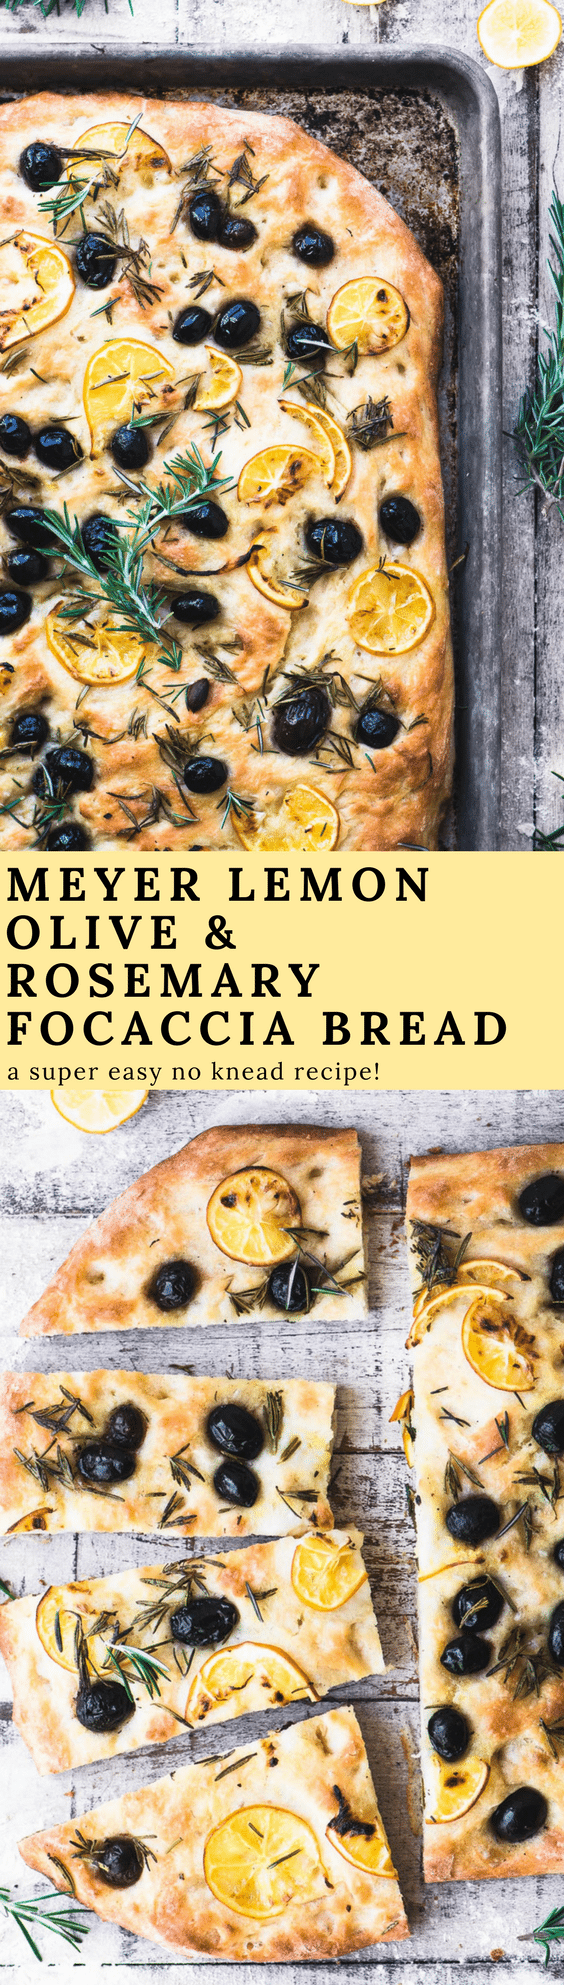 Rosemary and Olive No Knead Focaccia Bread with paper thin slices of Meyer lemon is a quick yeast bread you'll come back to time and again. #appetizer #bread #noknead #bestfocacciabread #focaccia #Italianbread #quickbread #easybread #breadrecipe #flatbread #yeastbread #easyyeastbread #meyerlemon #olives #rosemary #herbbread